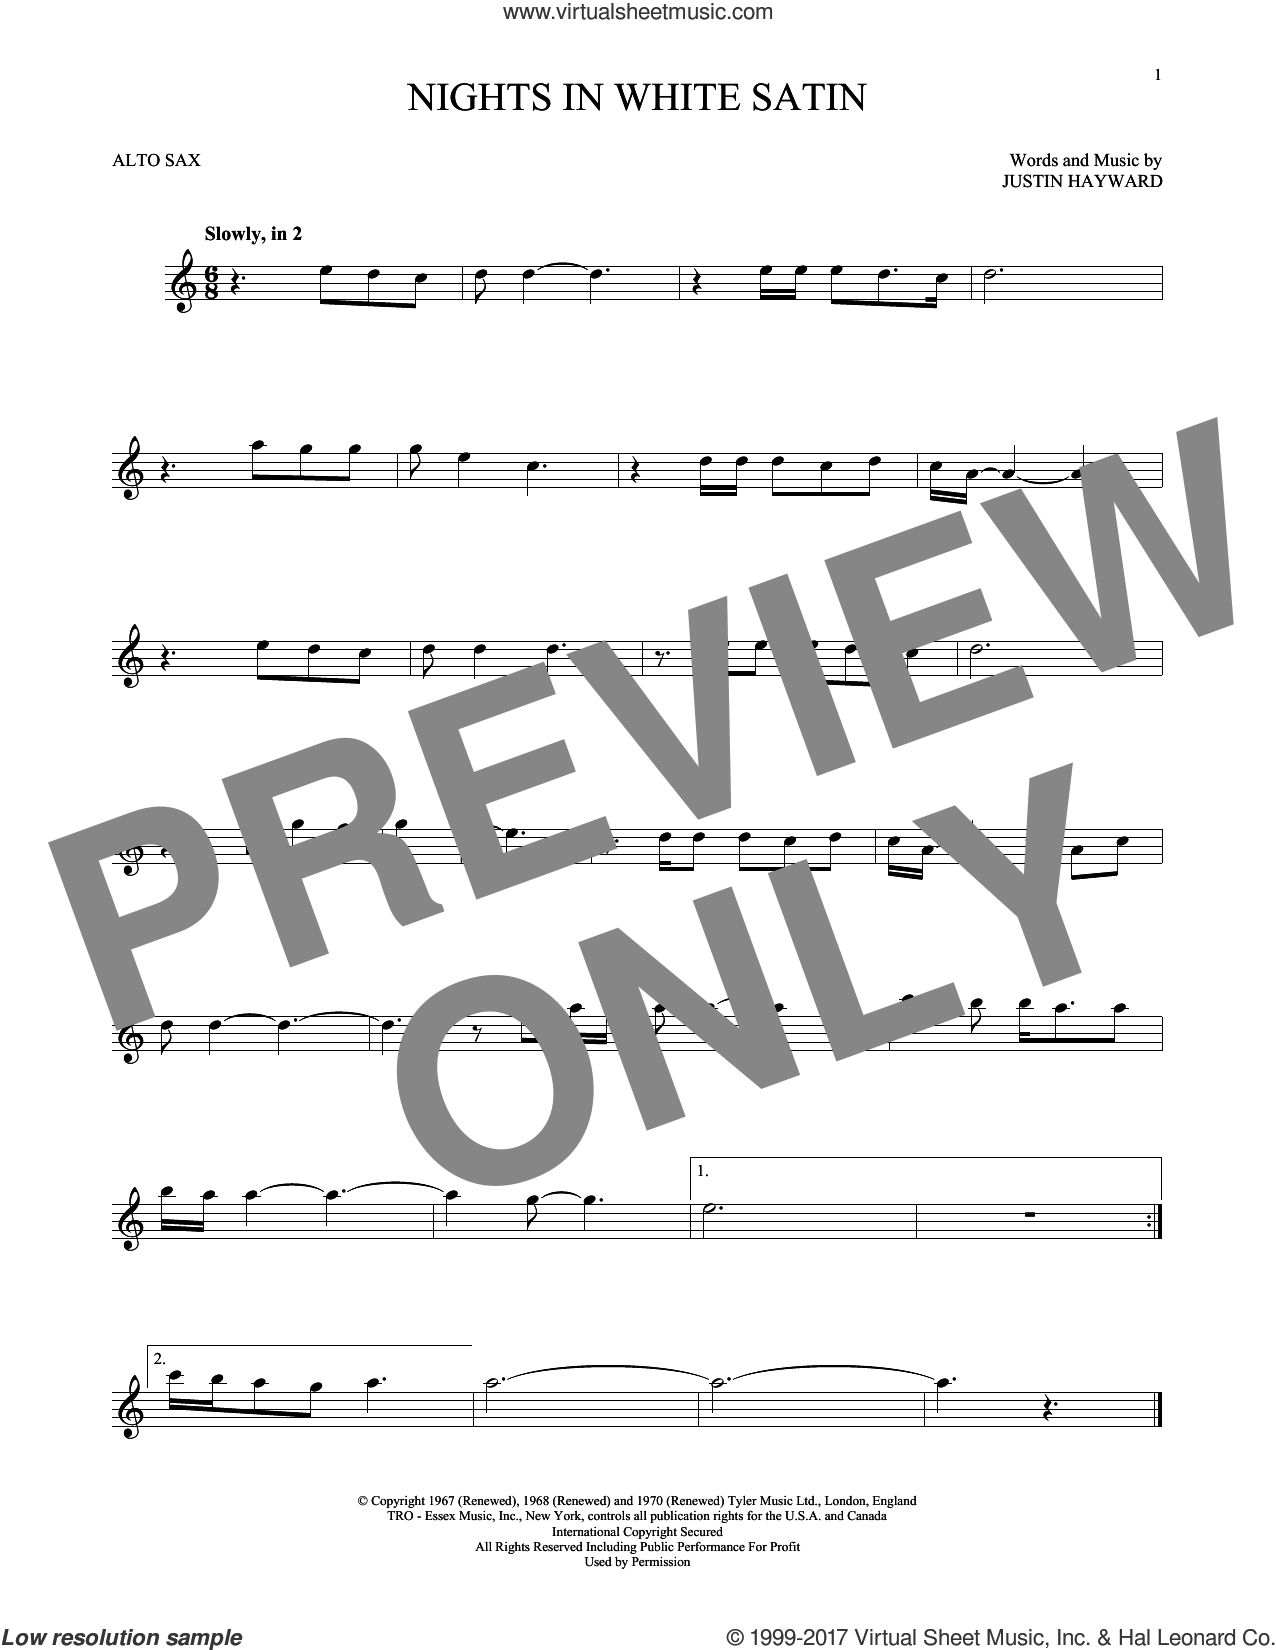 Nights In White Satin sheet music for alto saxophone solo by The Moody Blues and Justin Hayward, intermediate skill level